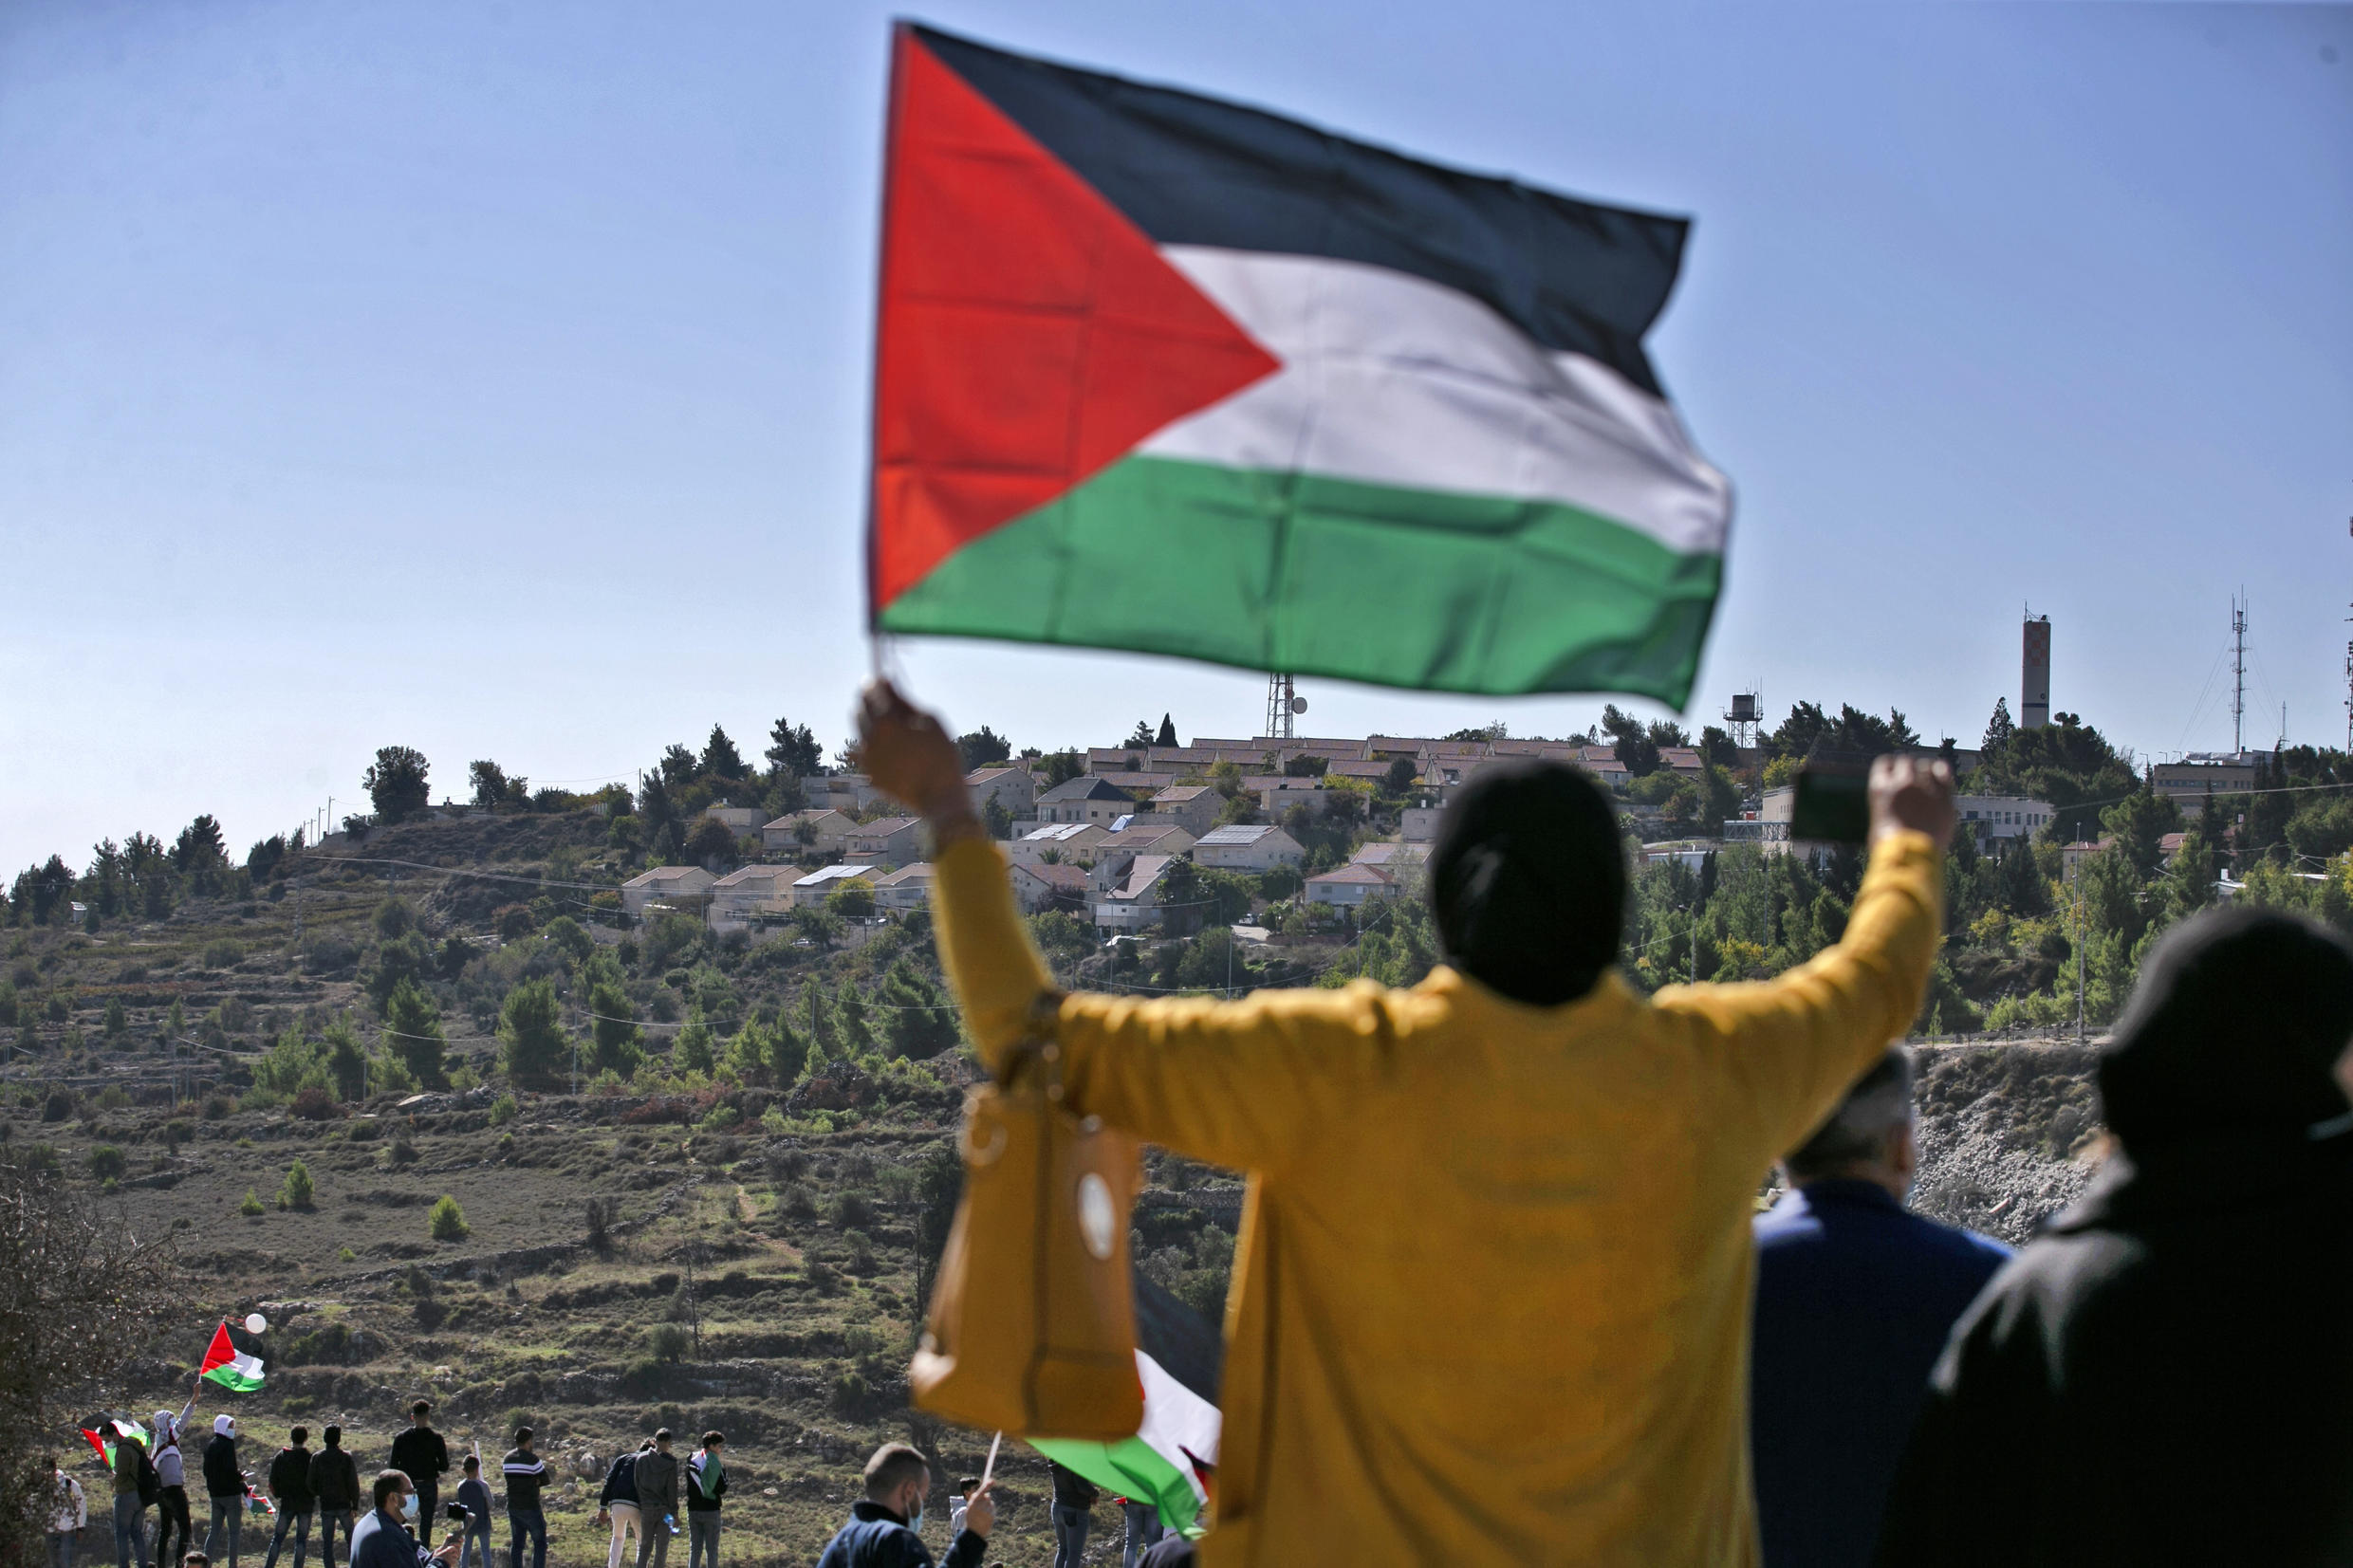 Palestinians demonstrate near the Israeli settlement of Psagot in the occupied West Bank, built on the lands of the city of al-Bireh, against the visit by US Secretary of State Mike Pompeo